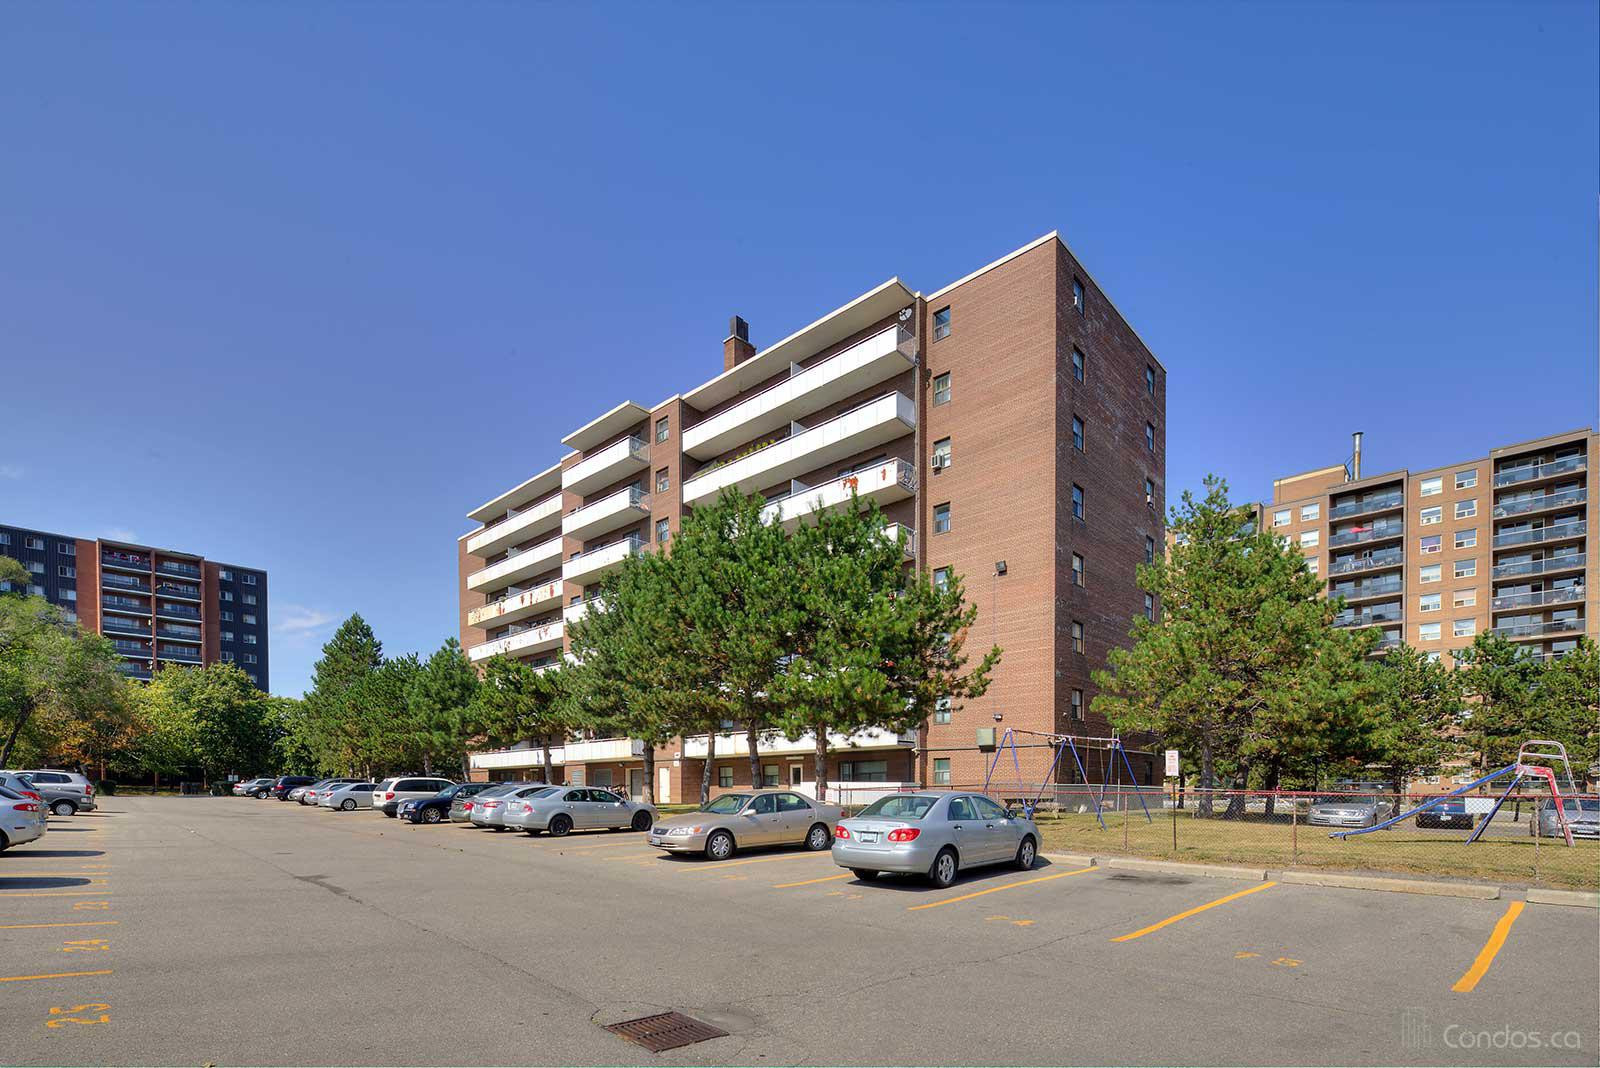 Bloorgate Towers at 3320 Fieldgate Dr, Mississauga 1